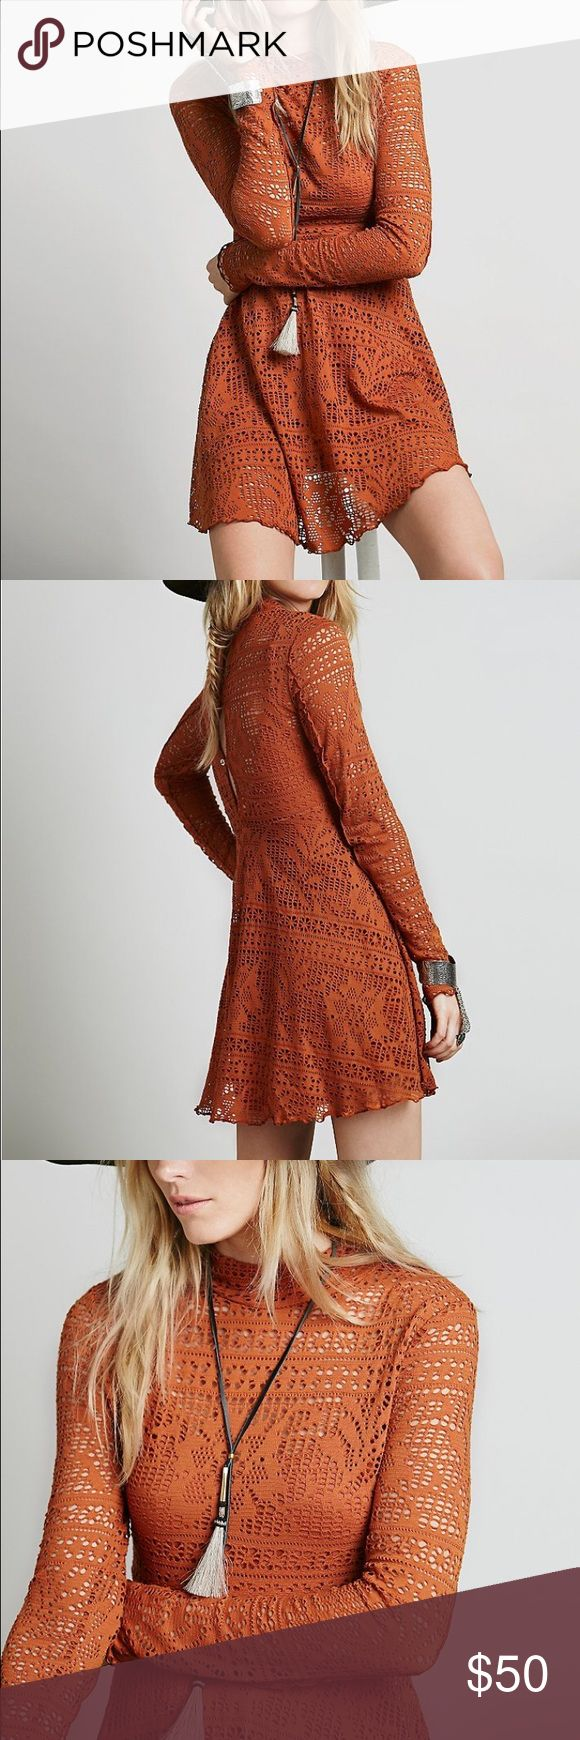 Free people dinner date dress Free people flirty fit and fit flare mini with a mock neck and long sleeves in a sheer crochet lace. Includes a detachable slip. Shell buttons down the back. Free People Dresses Mini